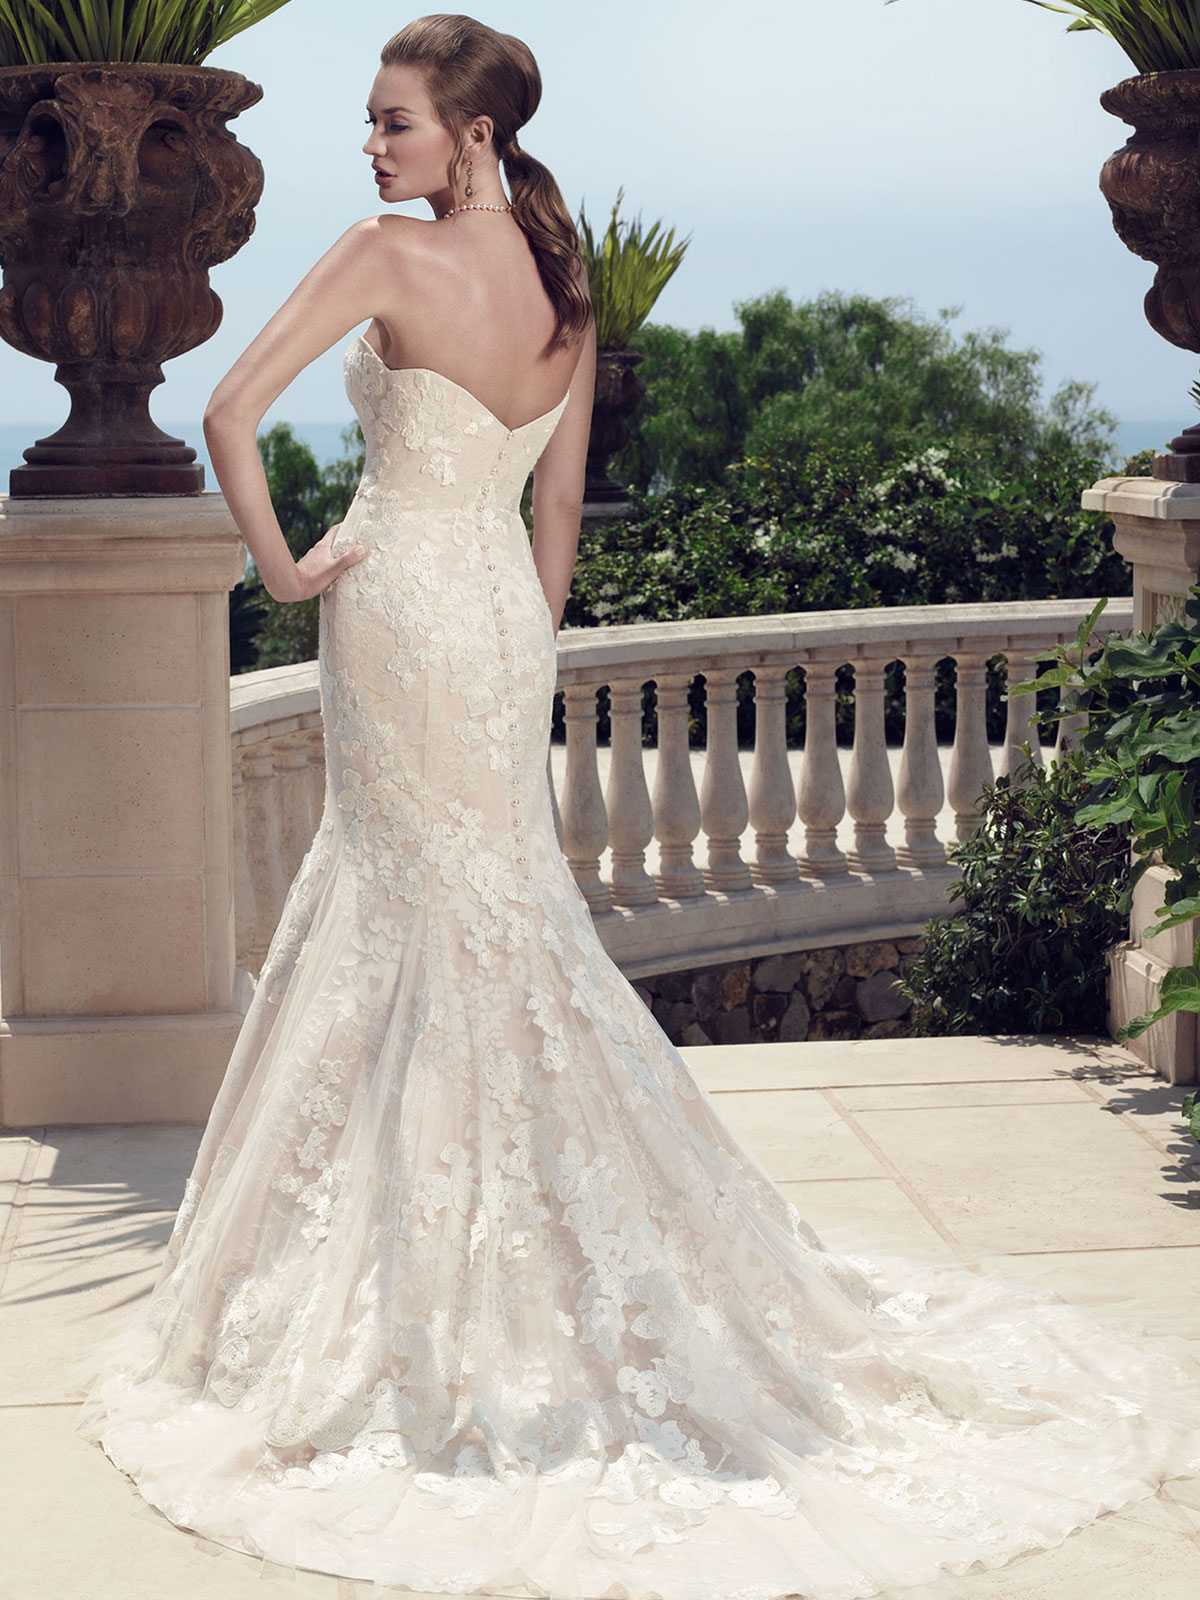 Casablanca 2142 Strapless Mermaid Bridal Gown